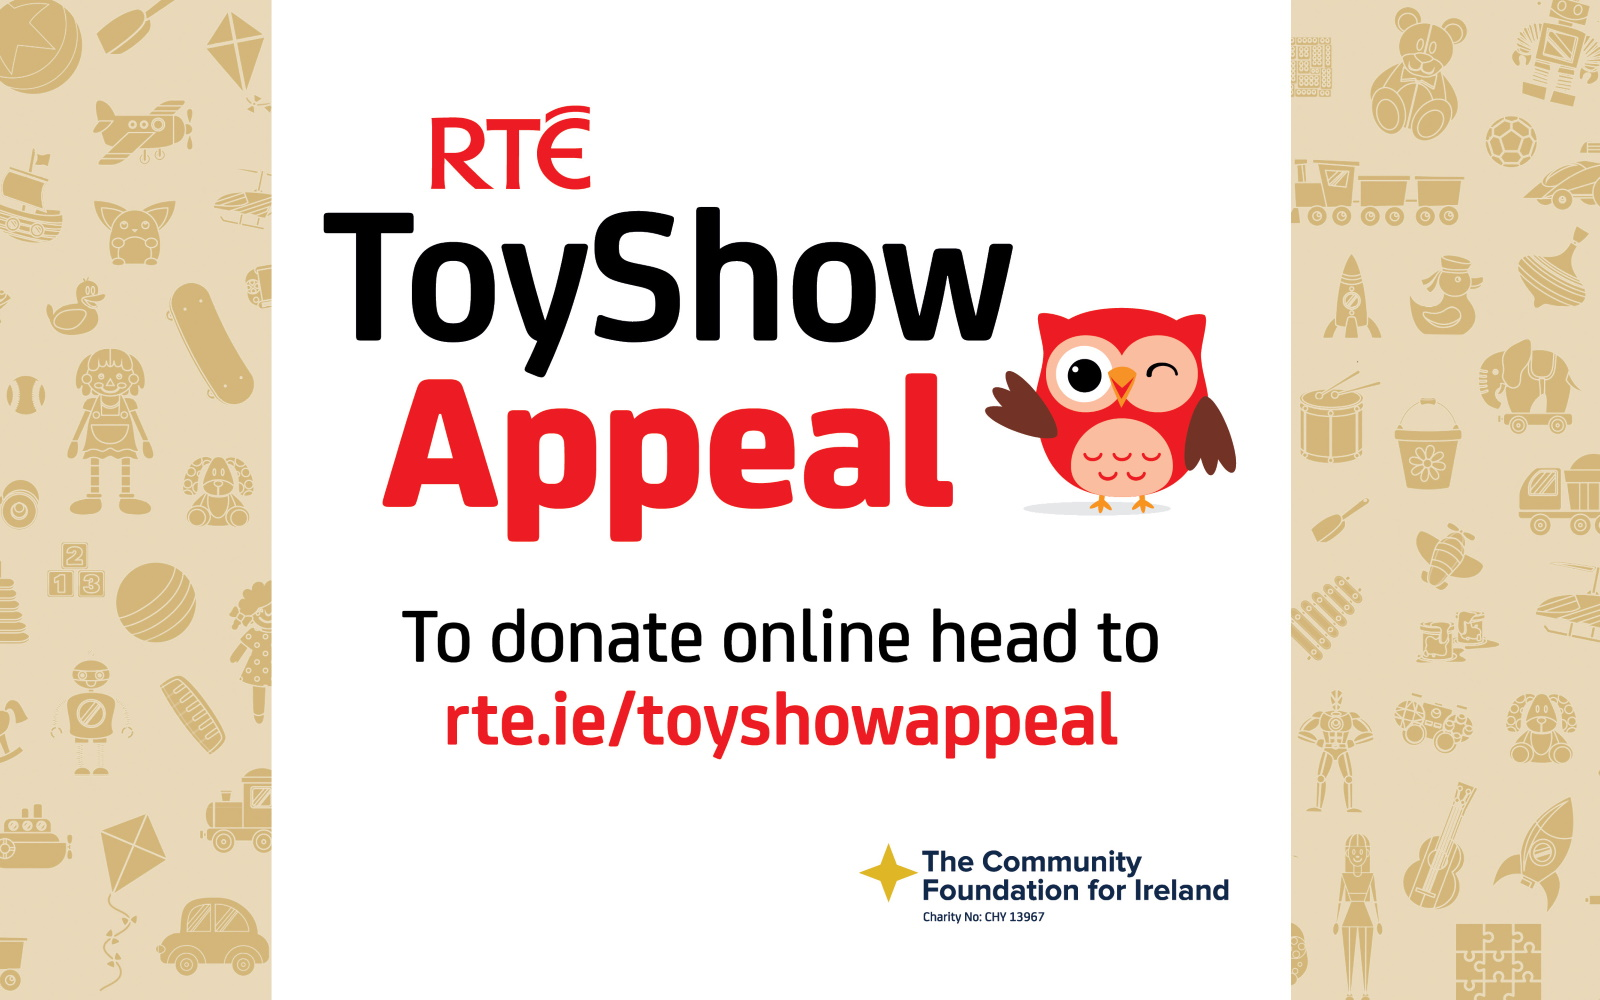 Over €6 Million Raised For Toy Show Appeal, As The Late Late Toy Show Was A Big Hit With People